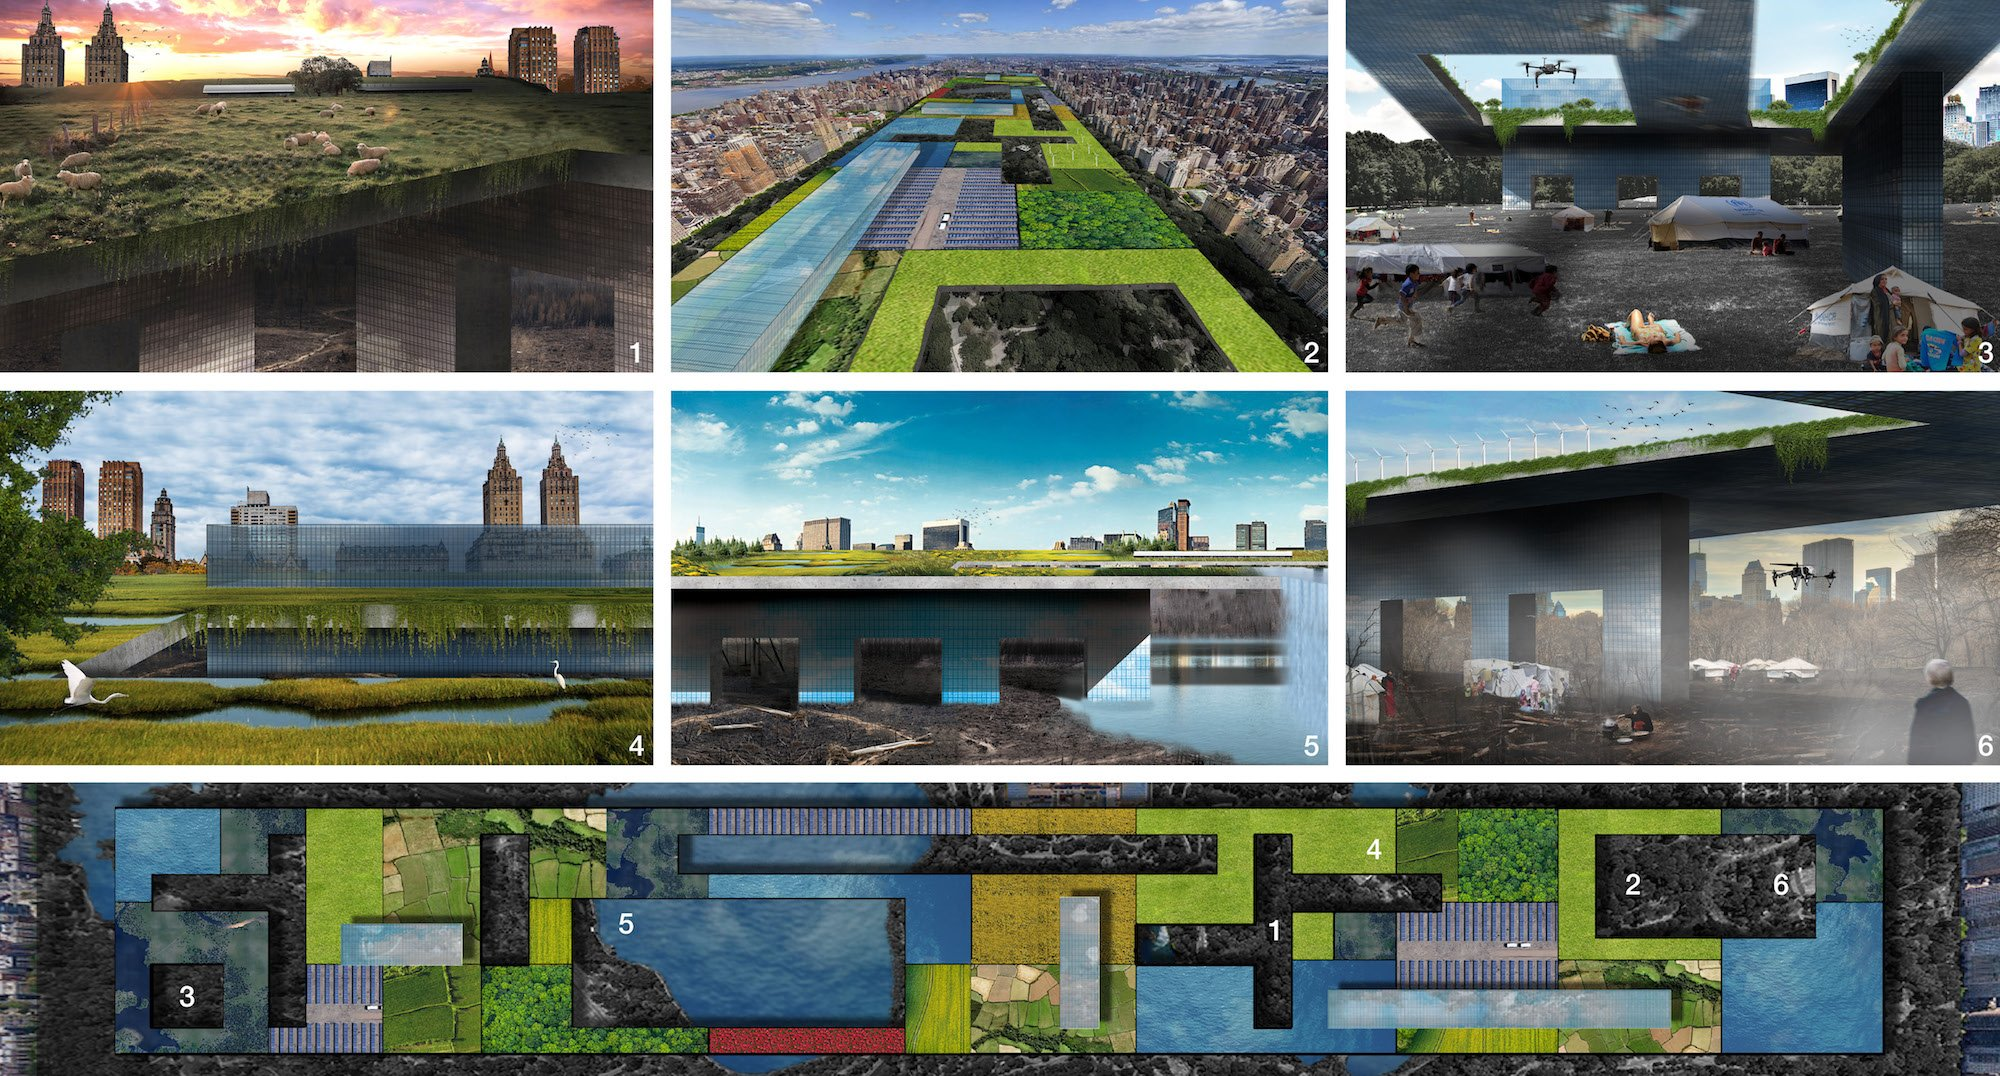 Newly Renovated And Re Imagined Central >> See Central Park Reimagined After Being Devastated By A Fictional